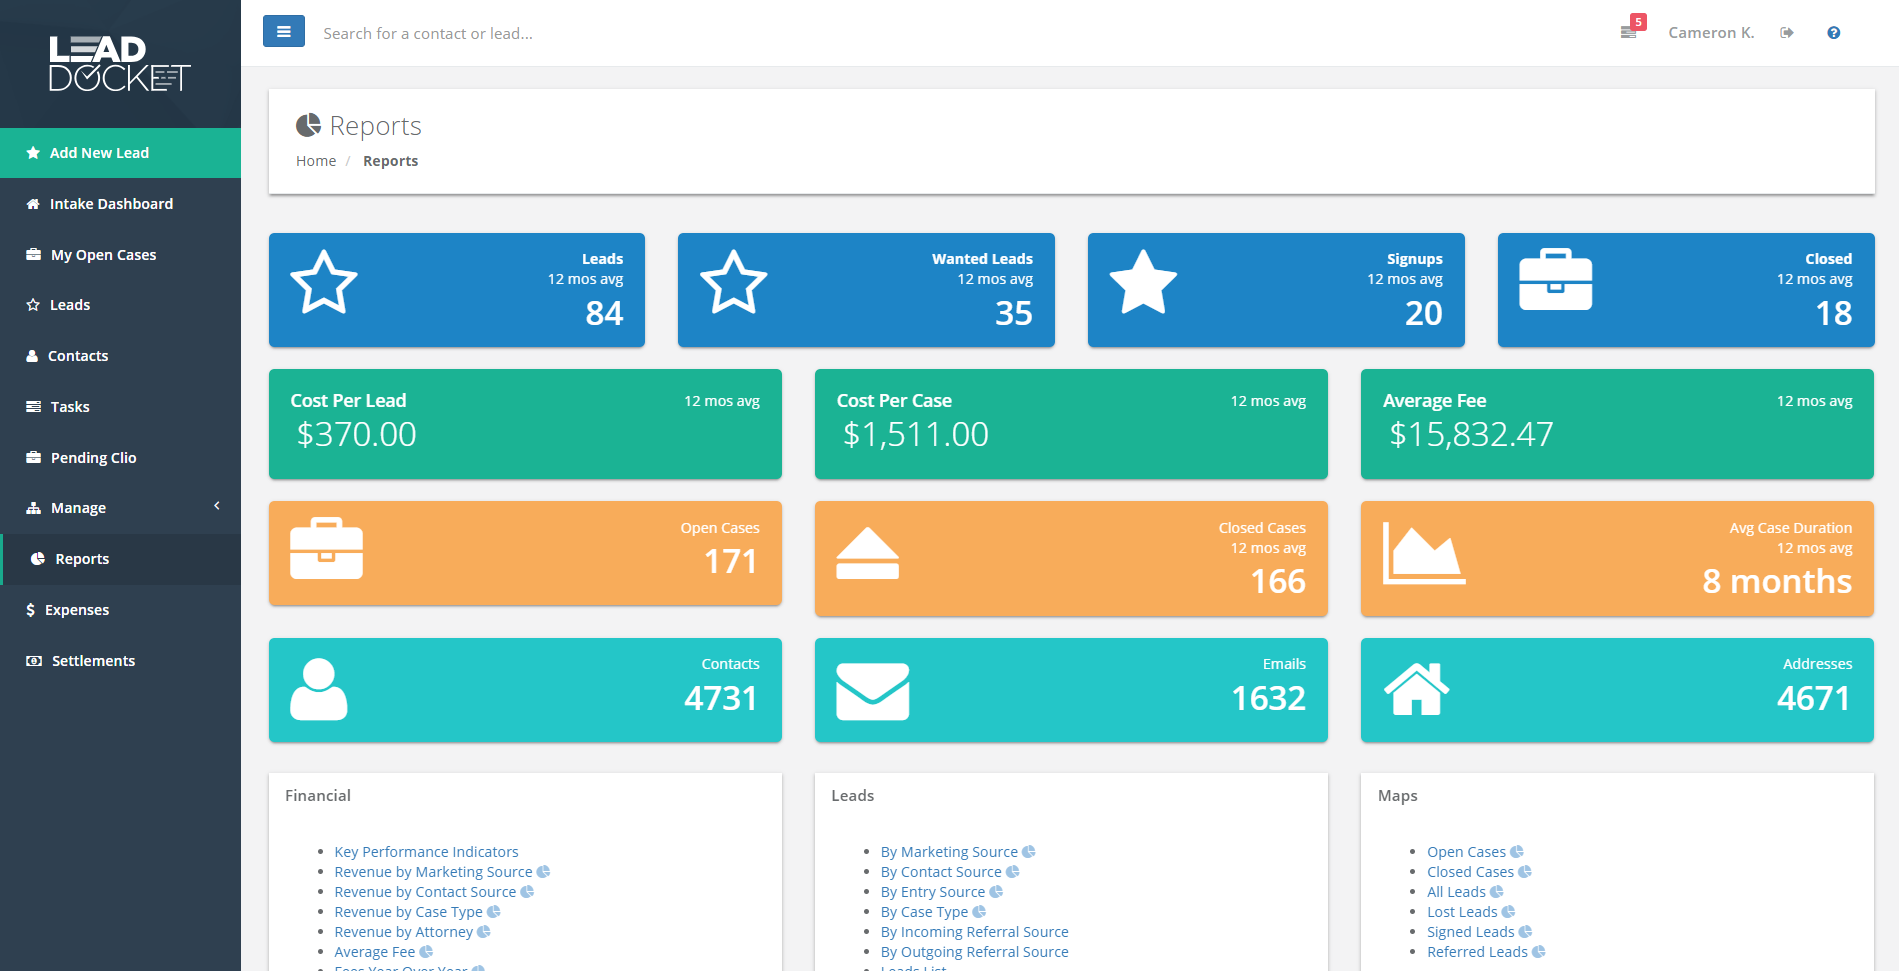 Lead Docket Software - Customize reports to create a home screen dashboard that instantly shows you the metrics that matter for your business growth.